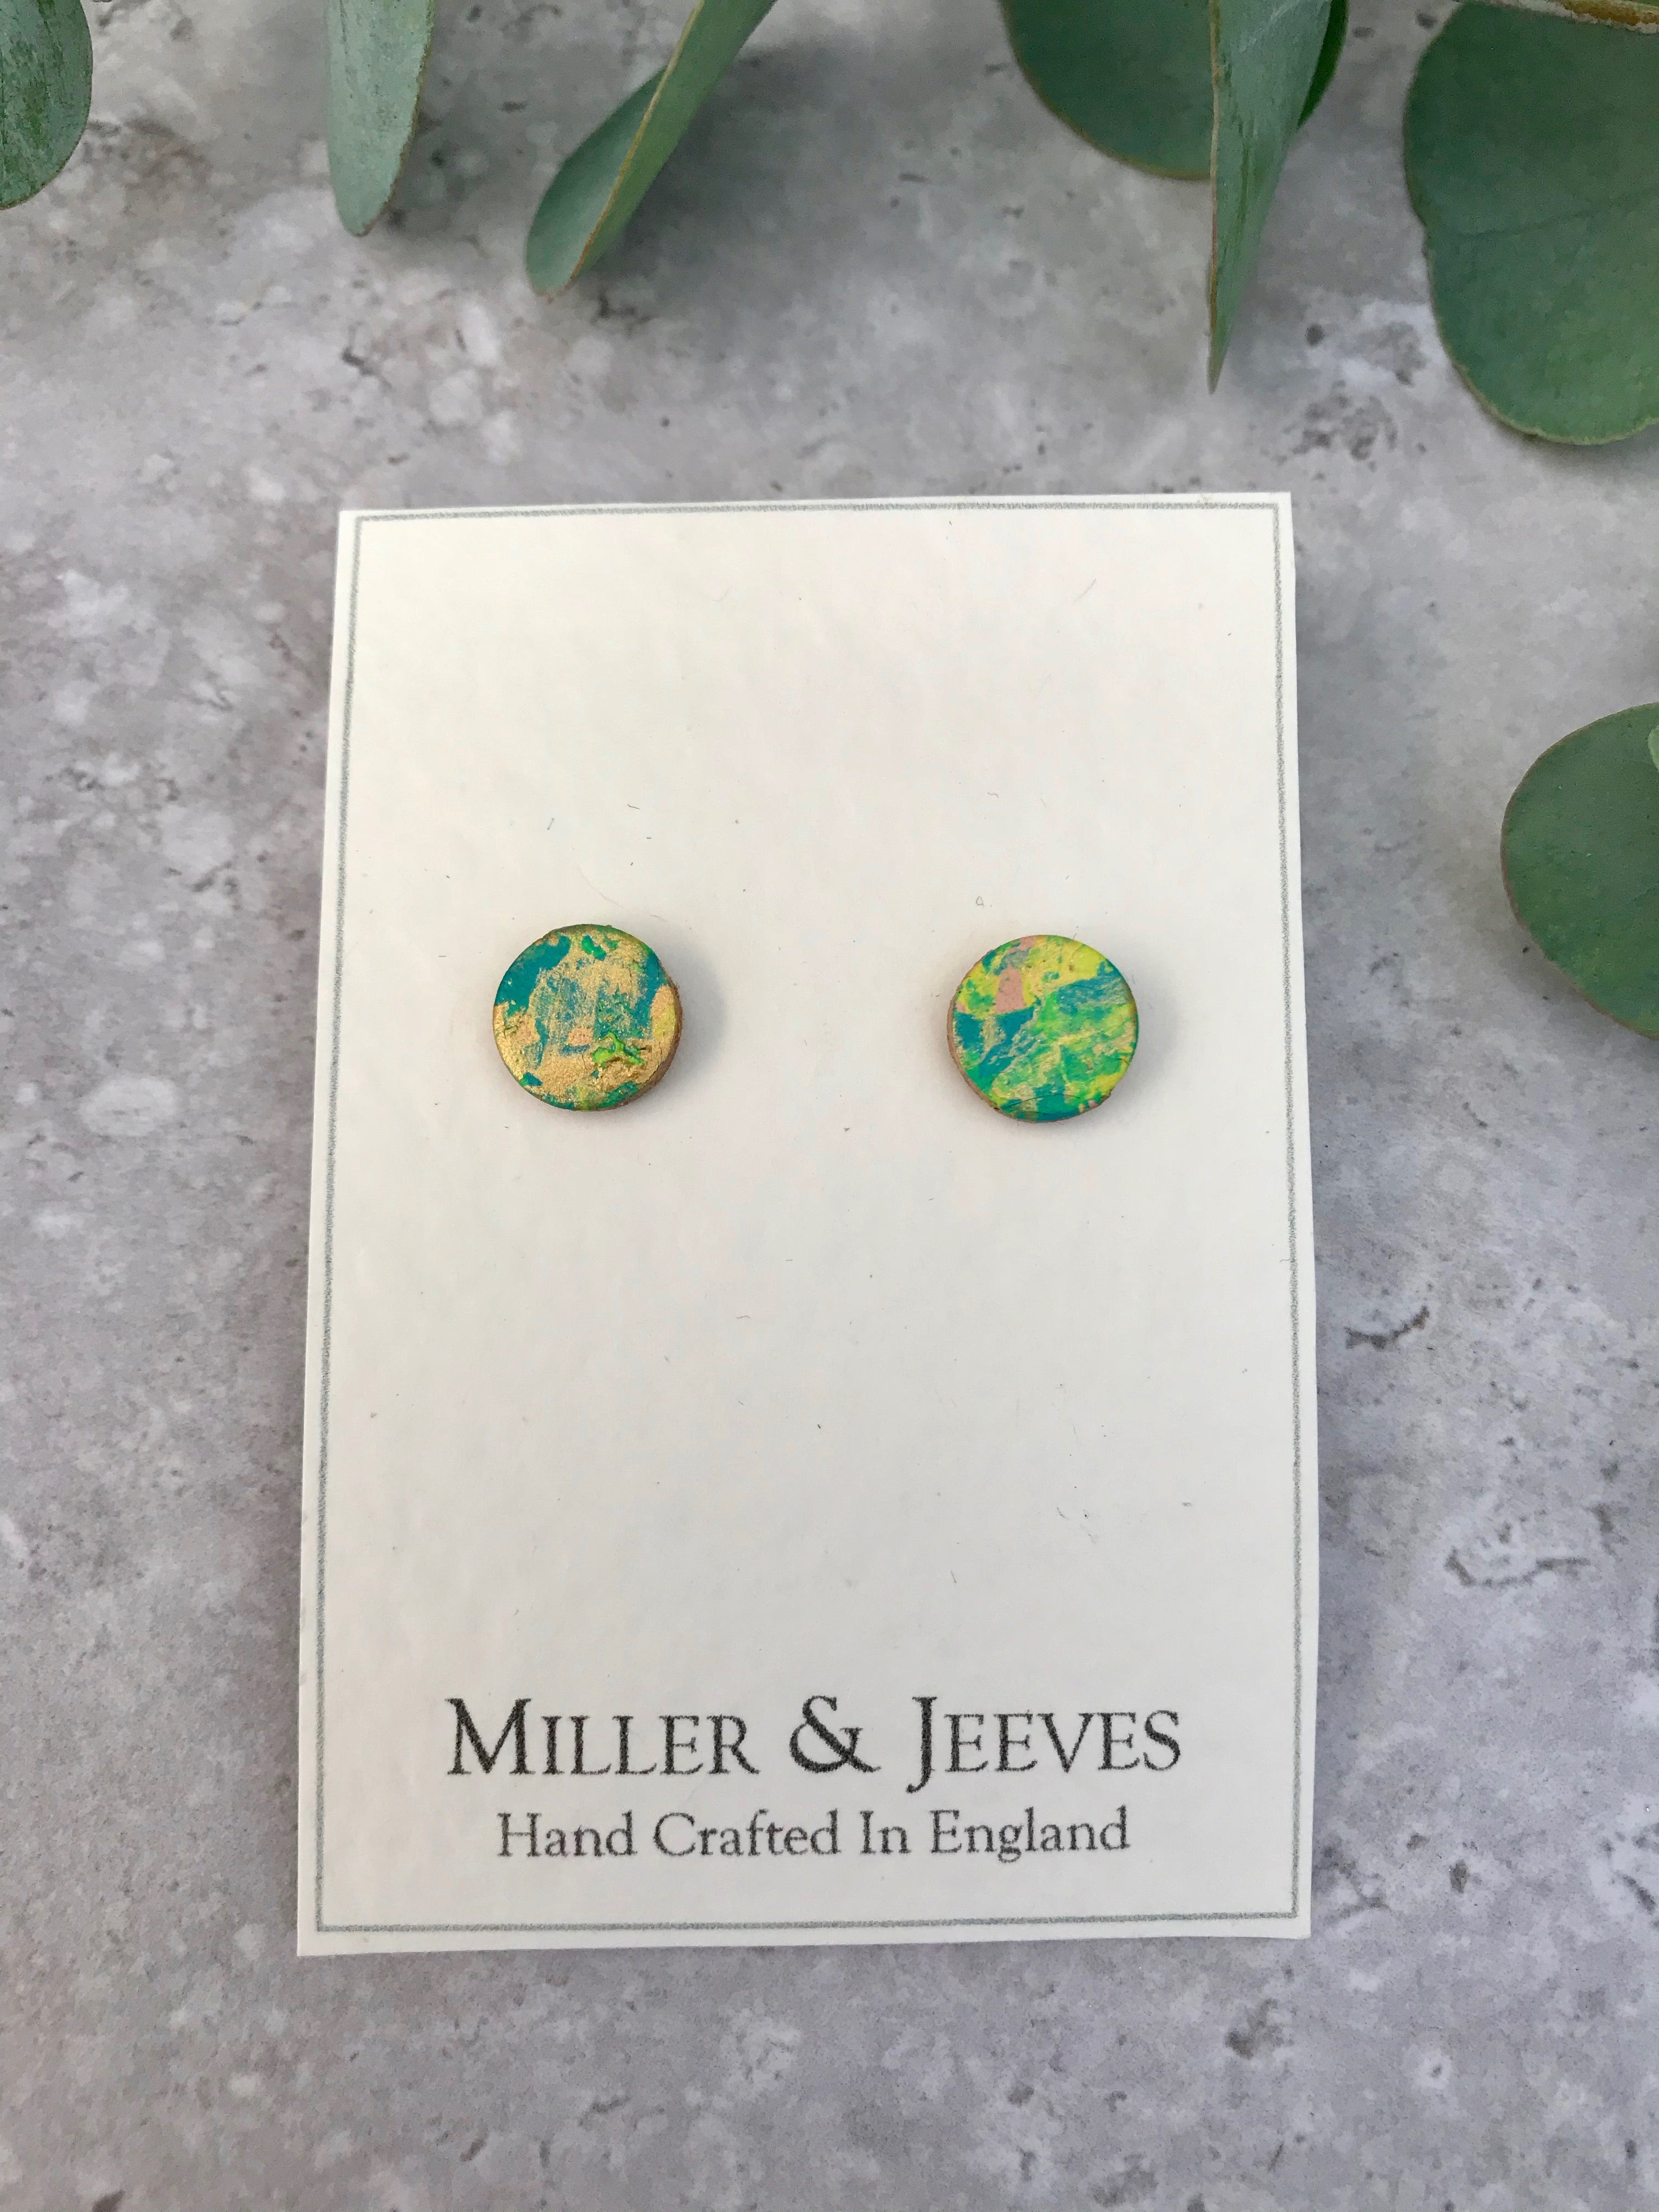 Hand-painted Leather Earrings with Stud Fastening - gold/blue/green/neon yellow (3/8a5)